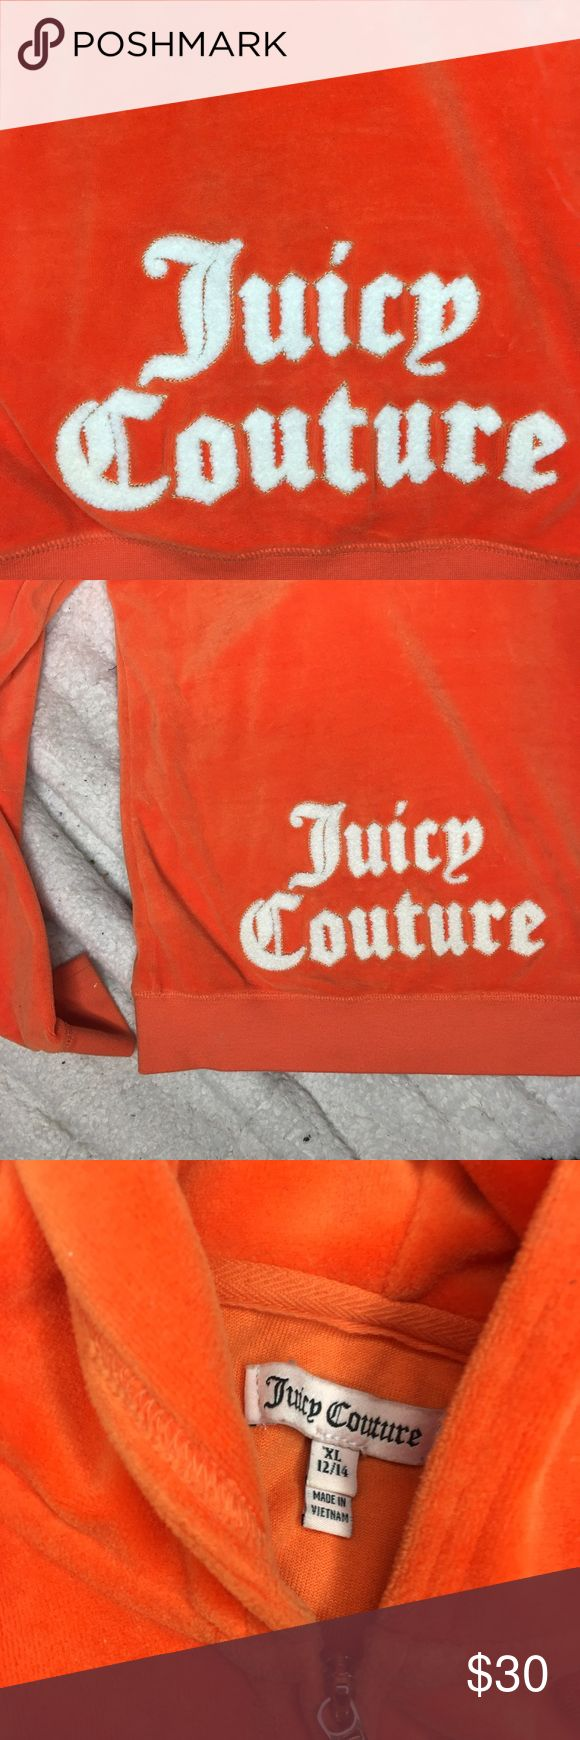 Juicy couture orange sweater Worn 3 times great condition. XL in kids wears like a woman's extra-small zip up Juicy Couture Sweaters